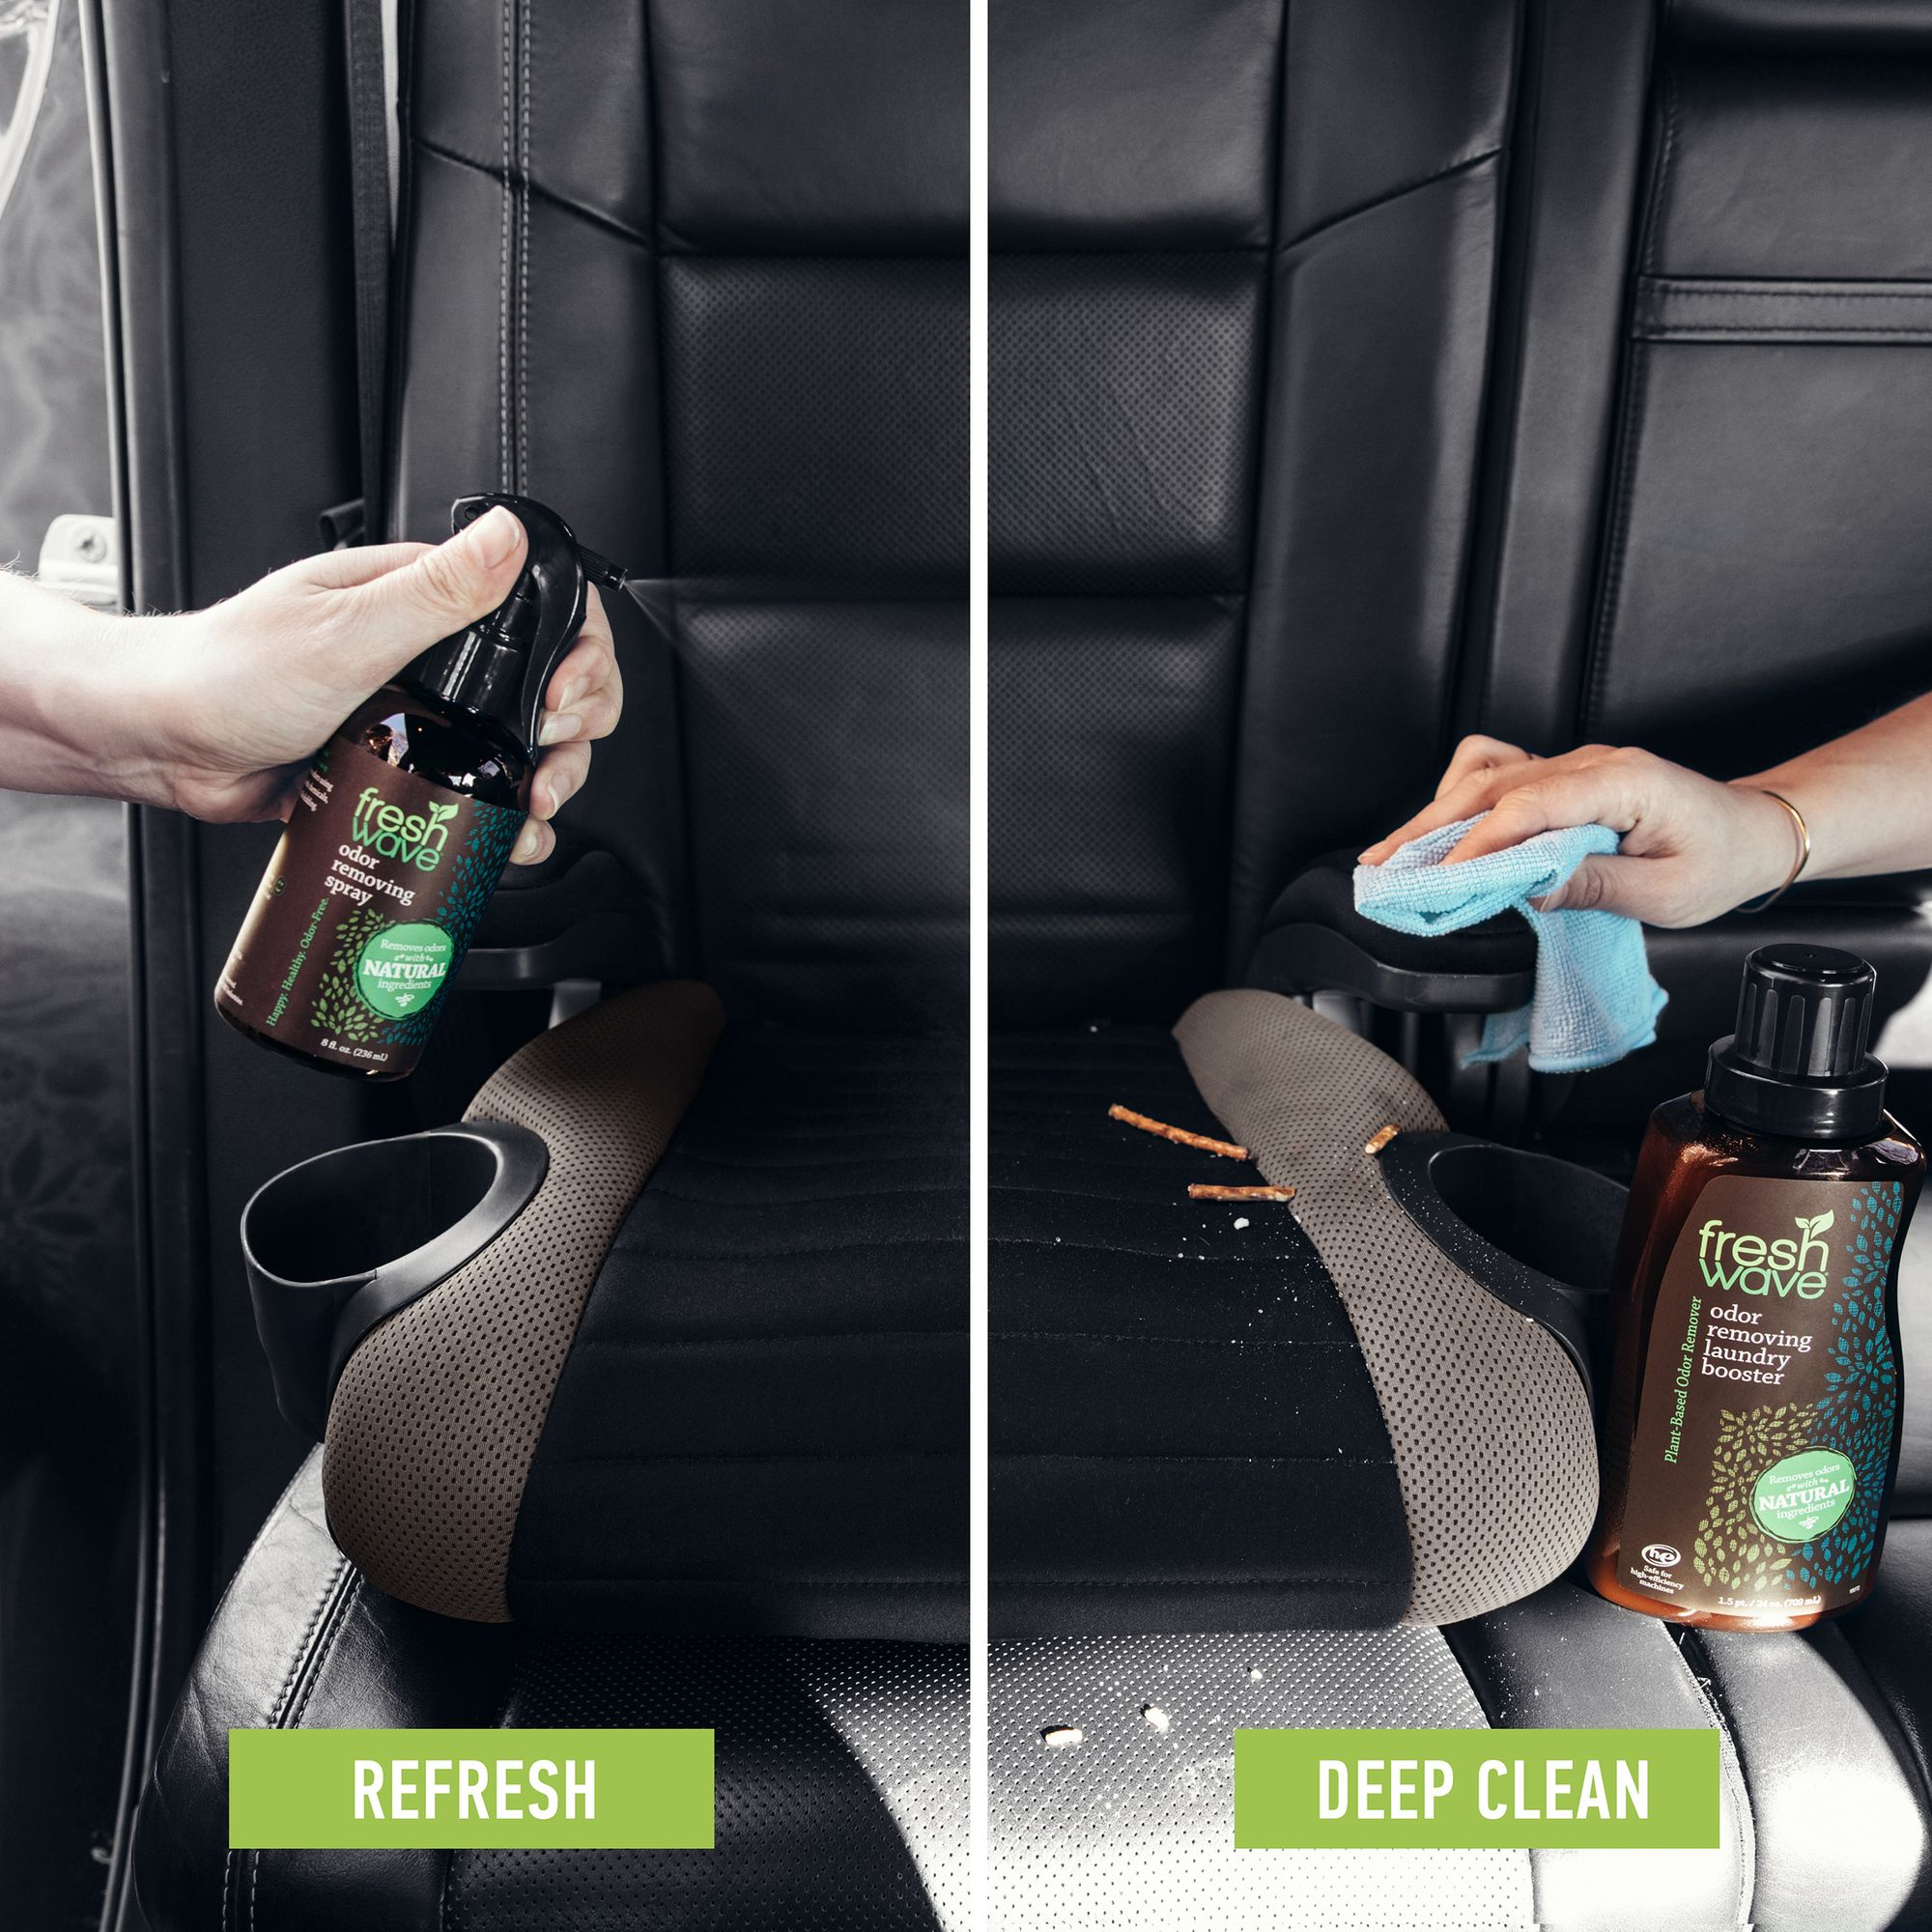 How To Get Human Urine Smell Out Of Car Seat